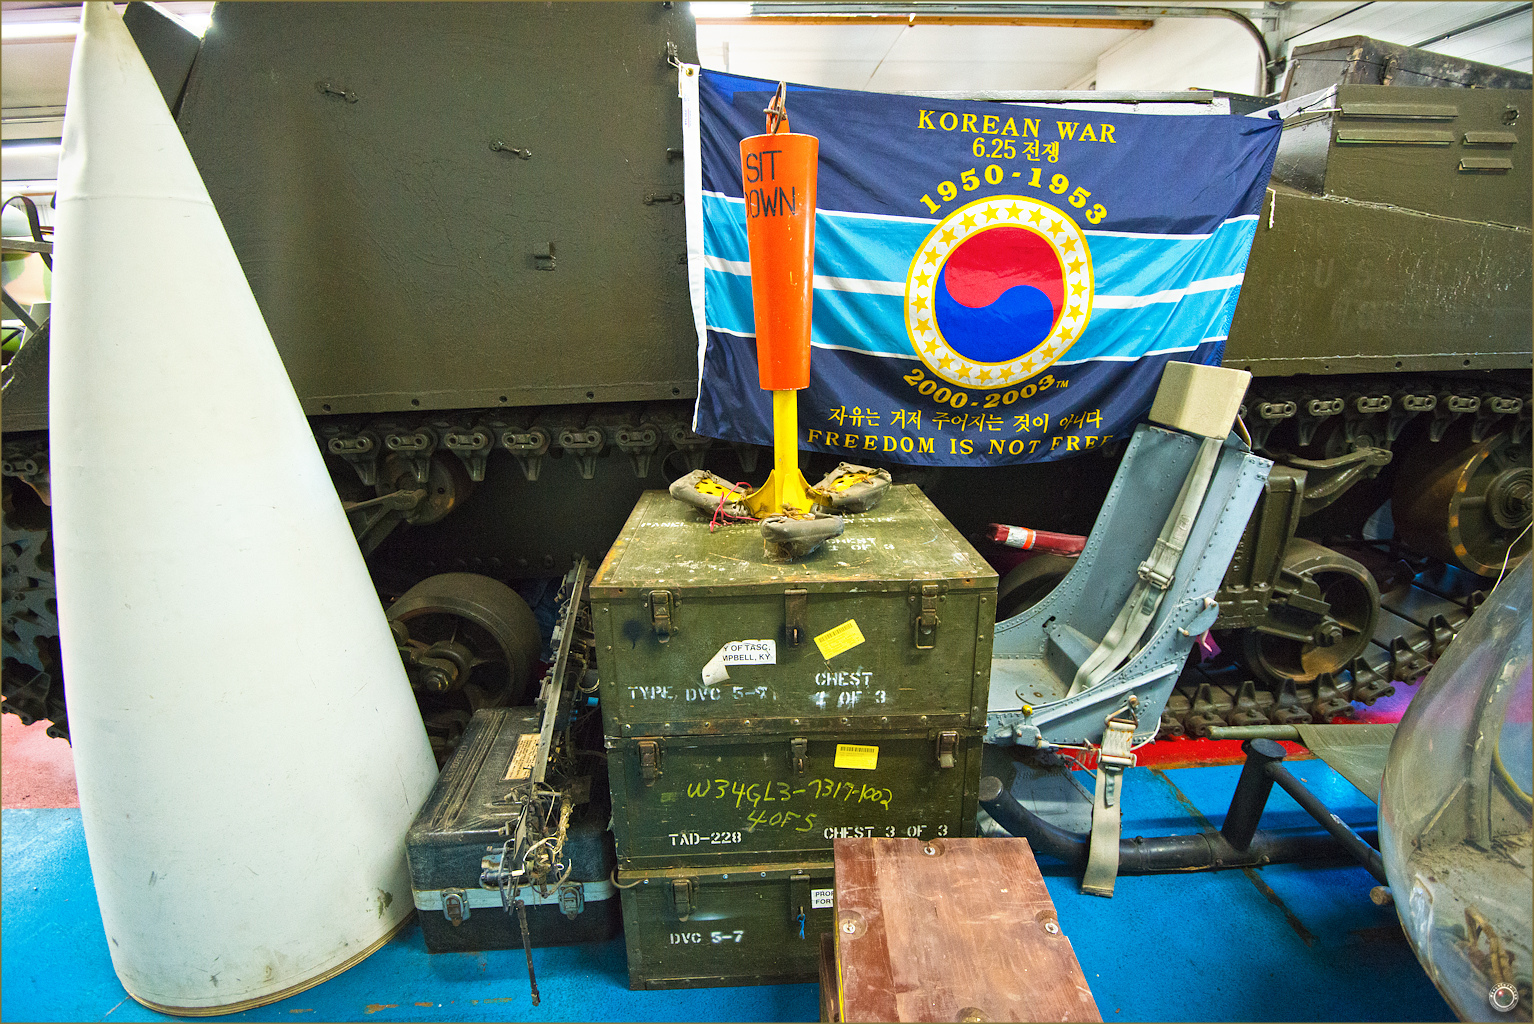 79 Russell Military Museum Korean War Memorabilia